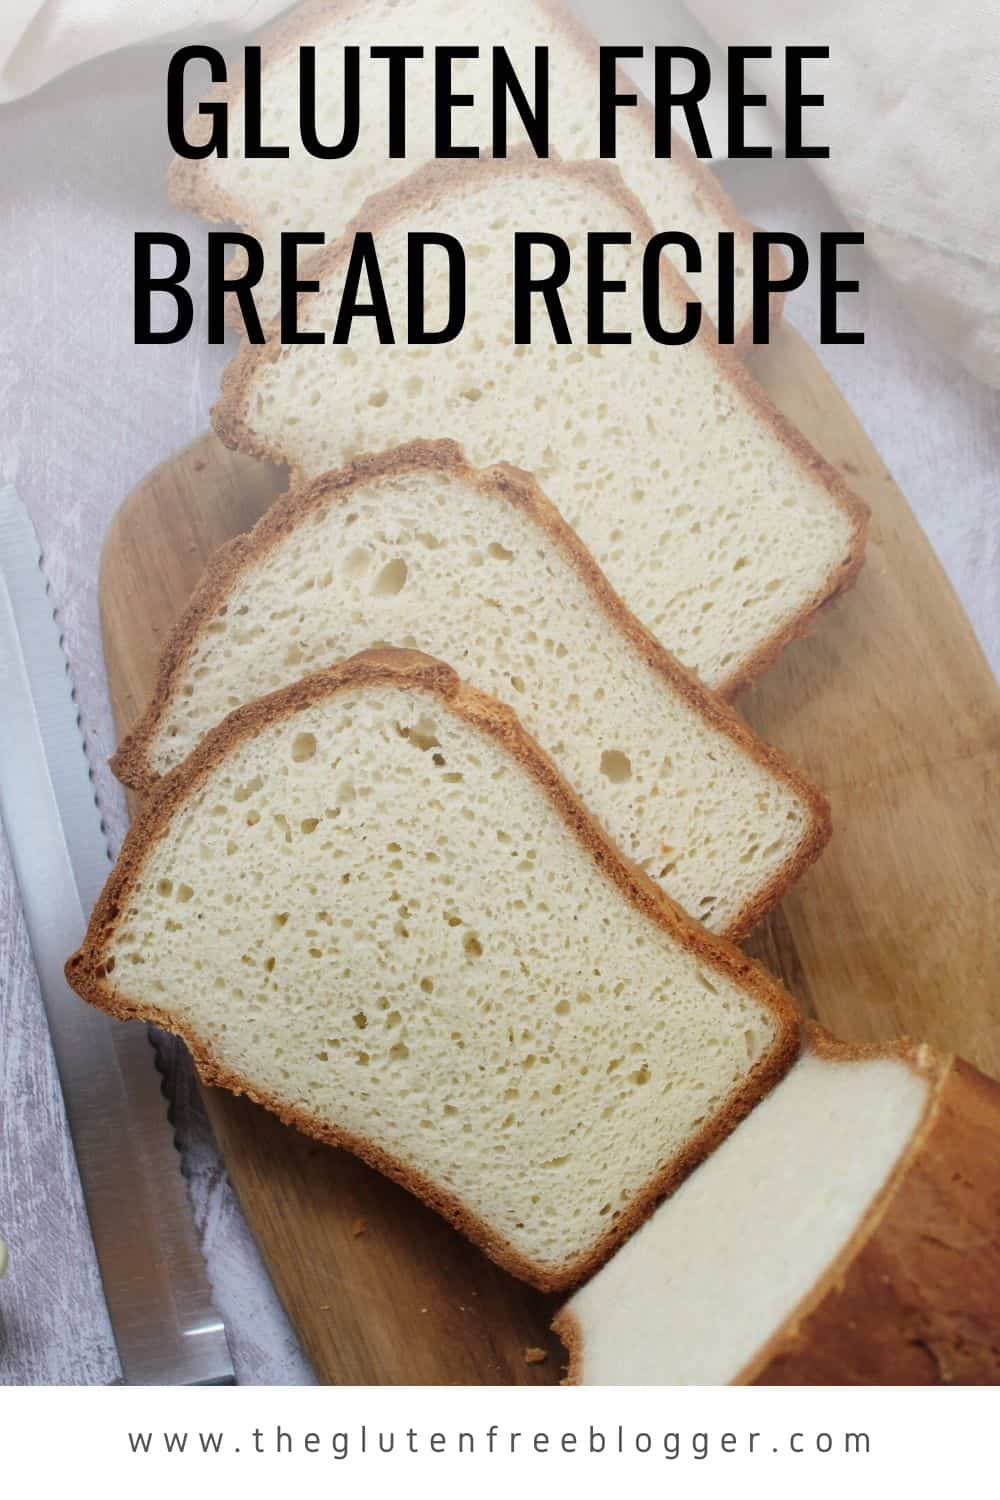 easy gluten free bread recipe basic baking at home dairy free (1)